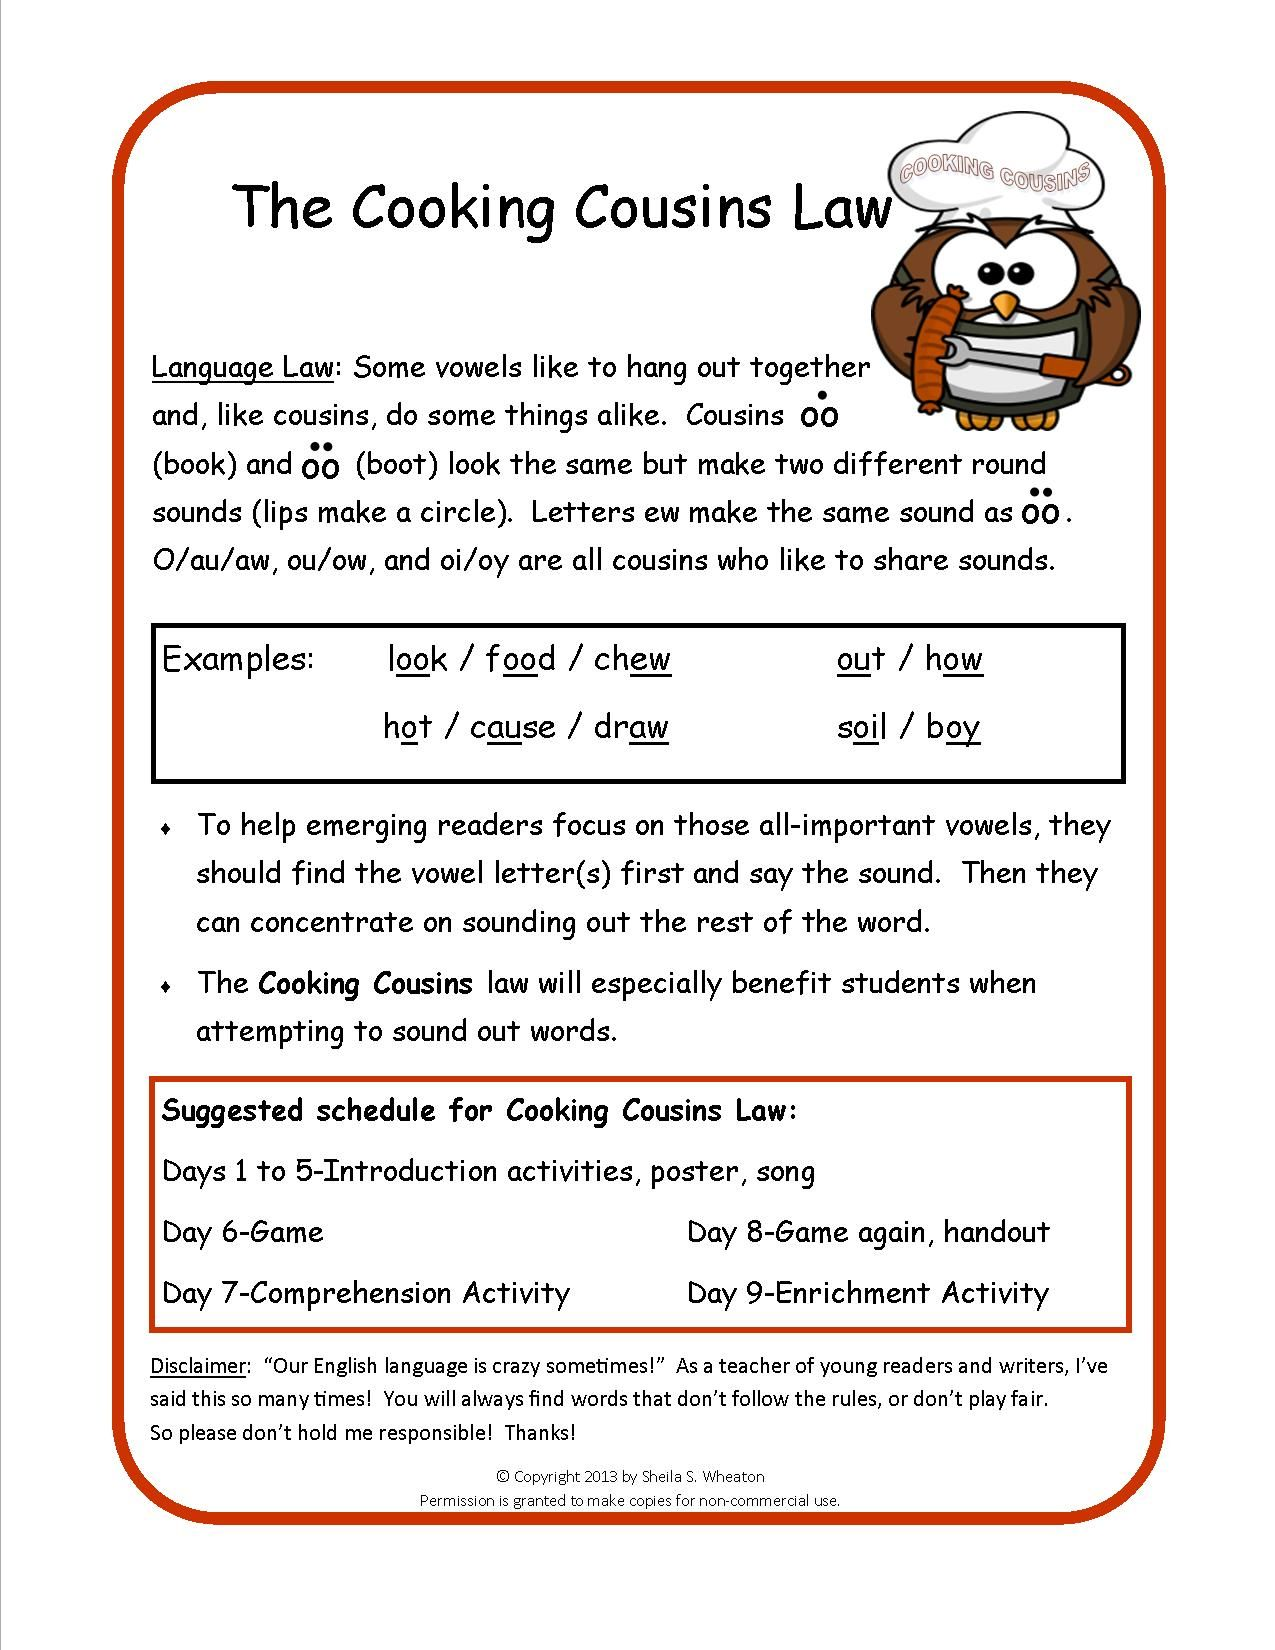 Language Law 8 Cooking Cousins